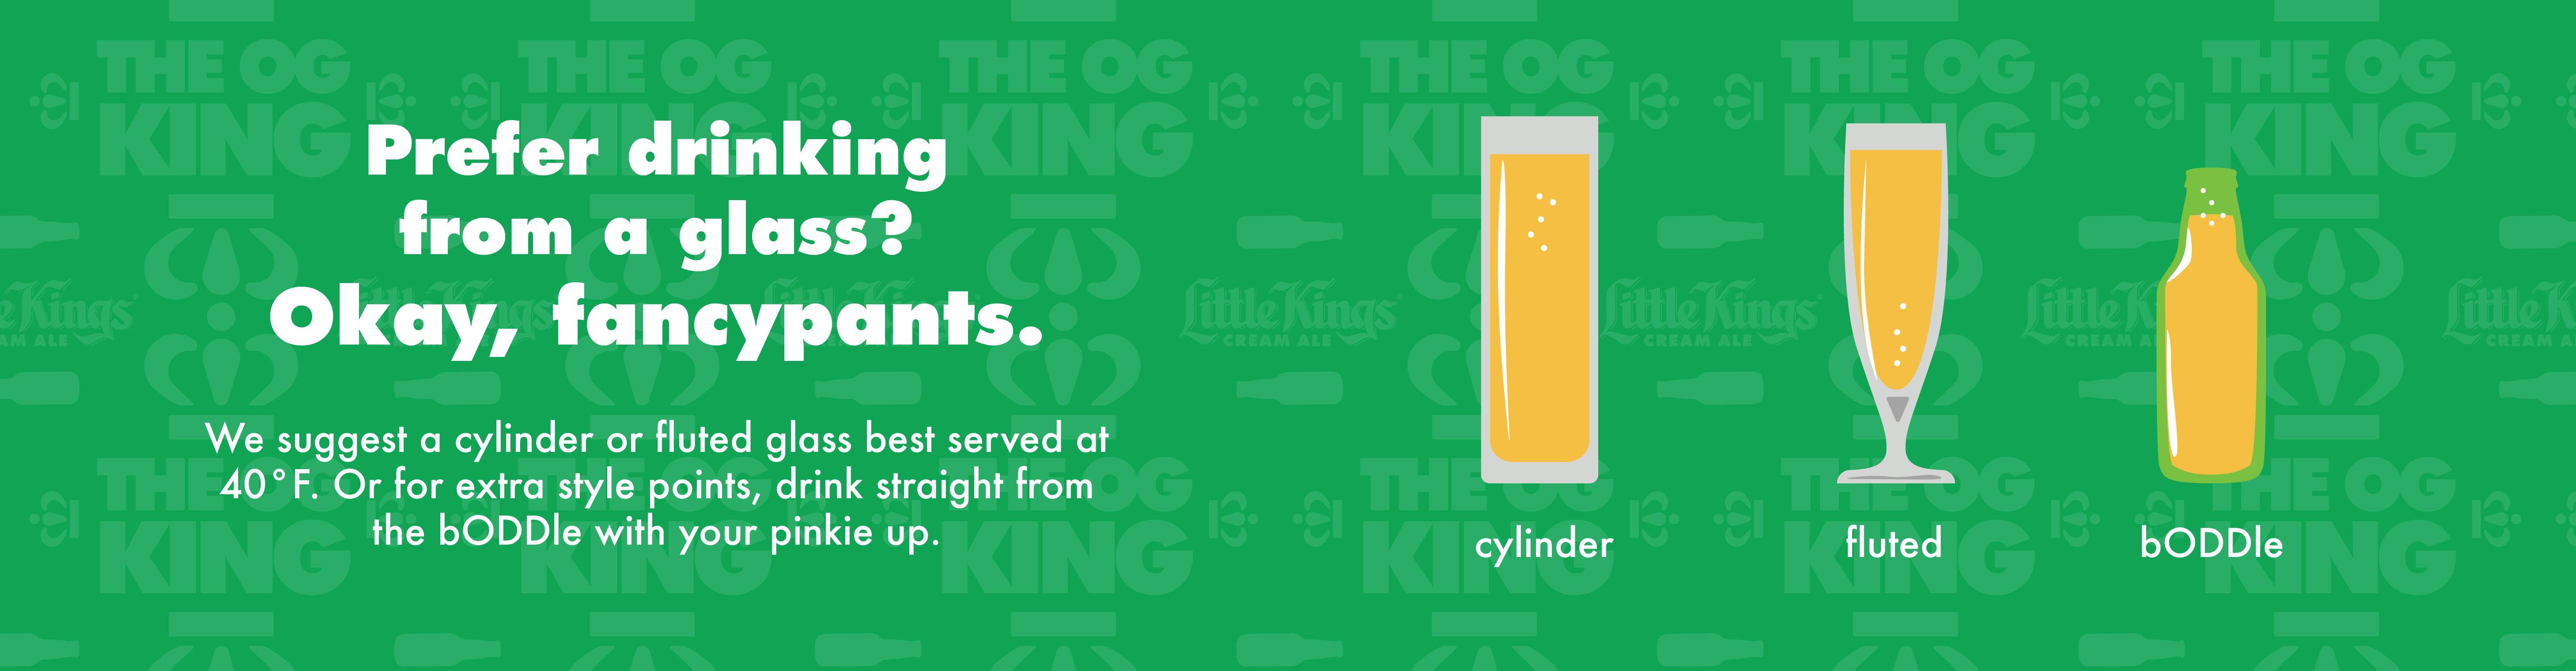 Little Kings | Drink straight from the bODDle with your pinkie up.